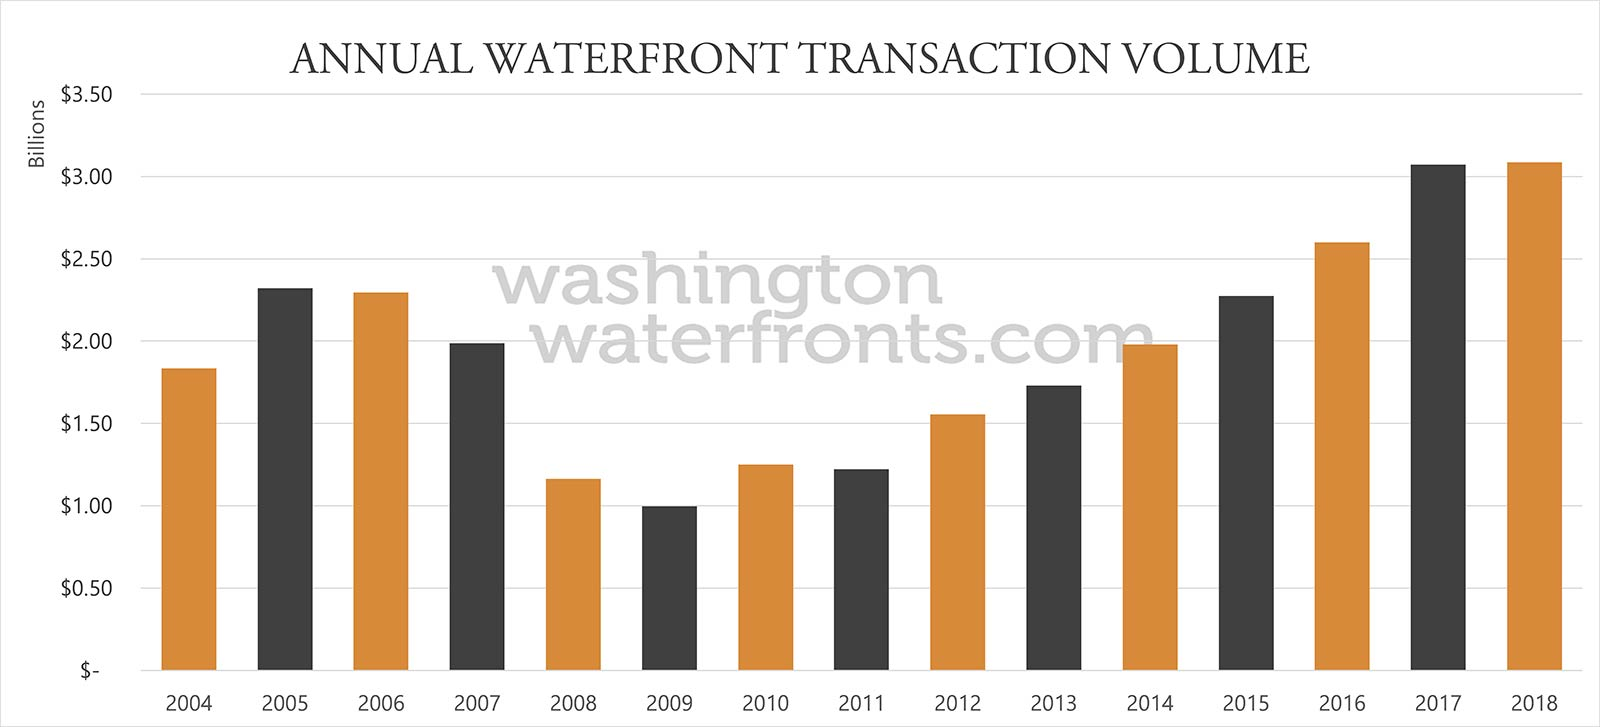 Washington State Annual Waterfront Transaction Volume